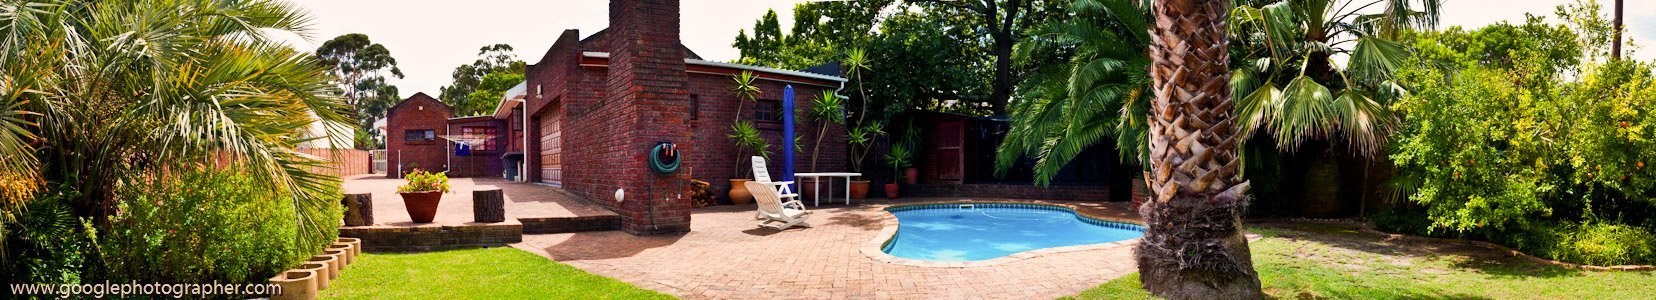 charel-schreuder-photography-property-photography-Panoramic-180-degree-Backyard